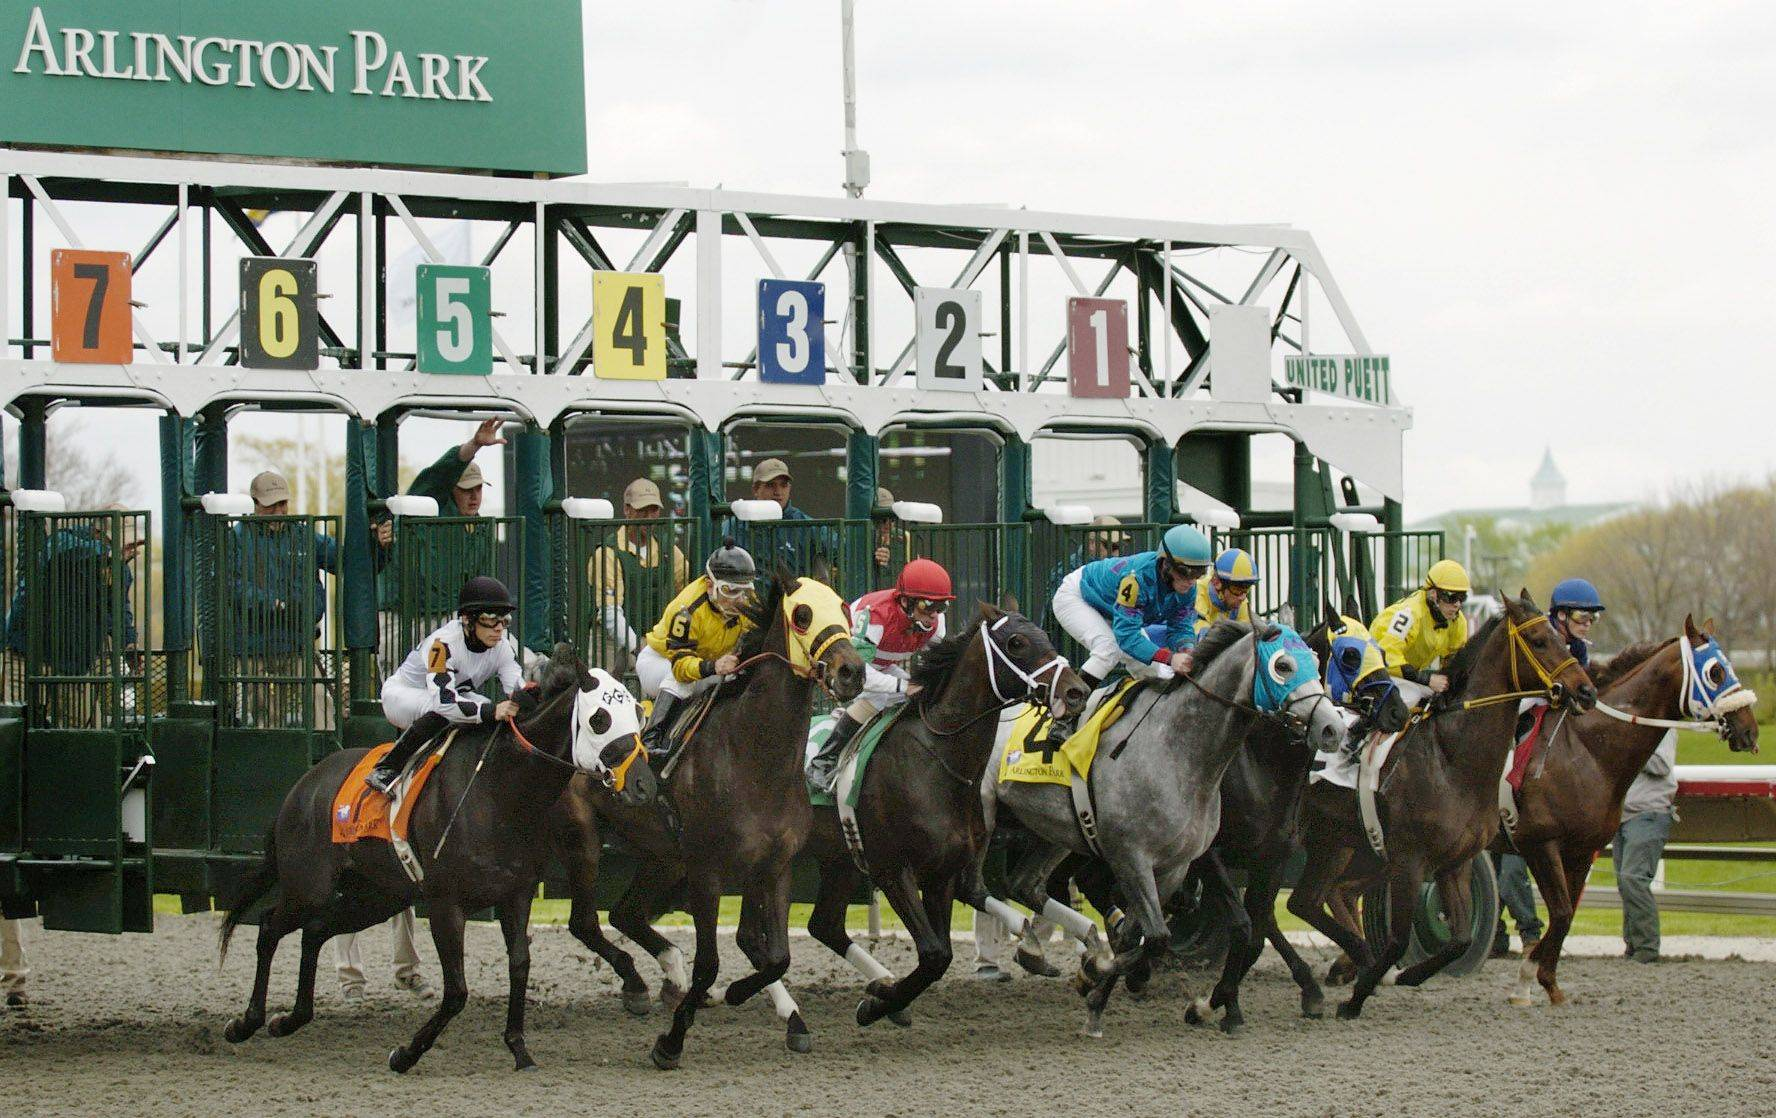 Arlington Park could have more than horse racing in future seasons under a plan by Skokie Democrat Lou Lang for the addition of slot machines at horse-racing tracks across the state to save the struggling industry.